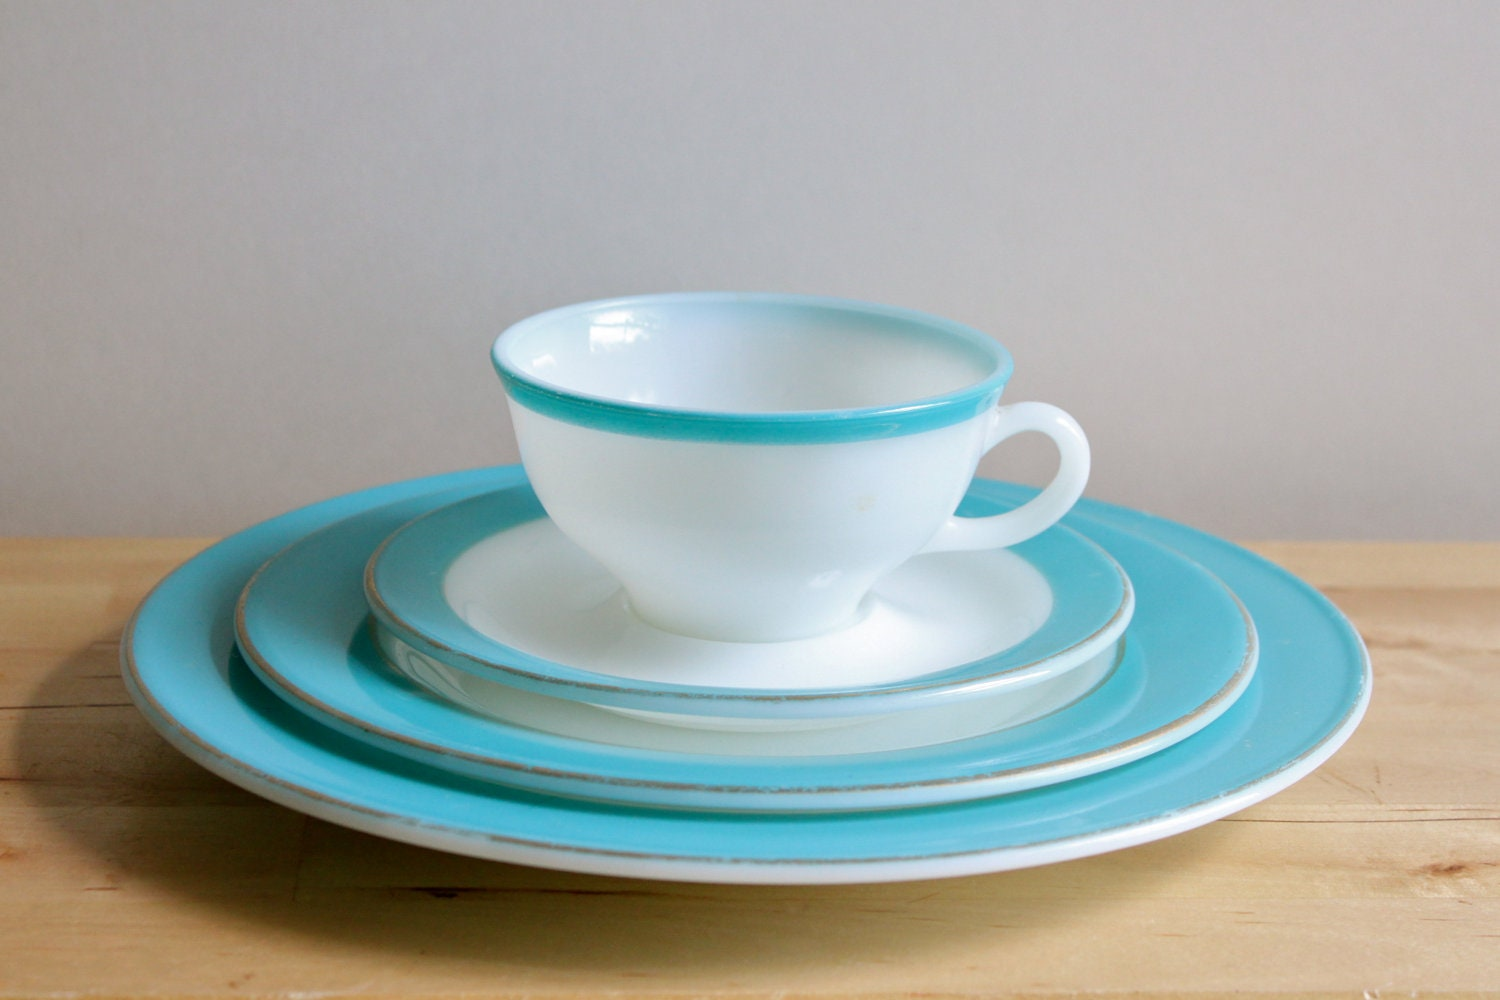 Turquoise pyrex dishes vintage 1950s milkglass plate for Cuisine turquoise